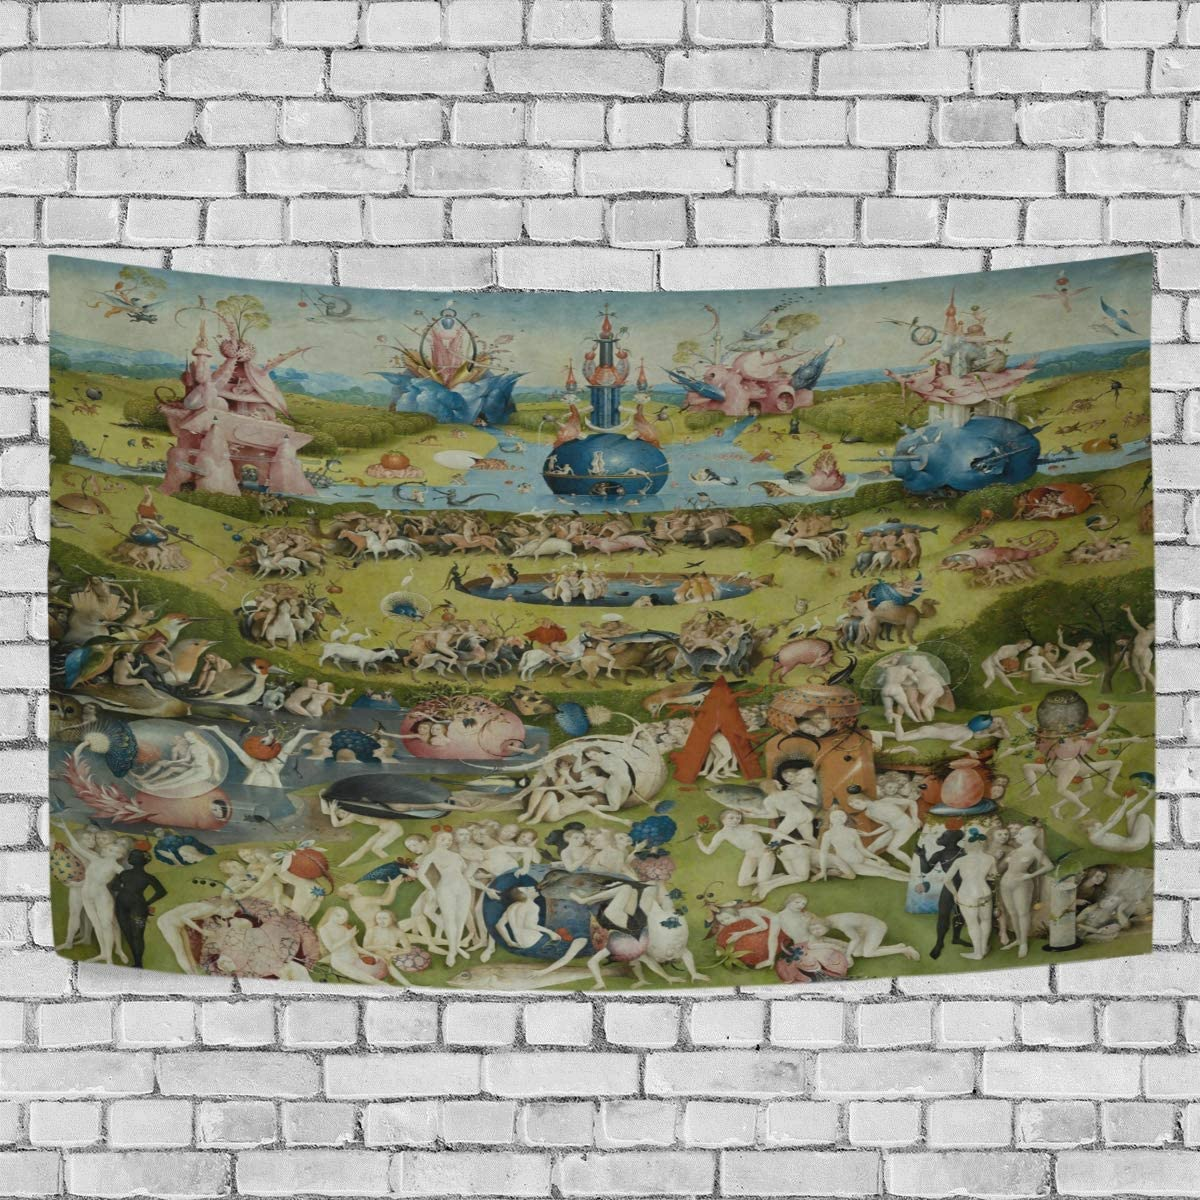 DJROW The Garden of Earthly Delights Decor Tapestry Wall Hanging for Bedroom Living Room Dorm 60x51(in)